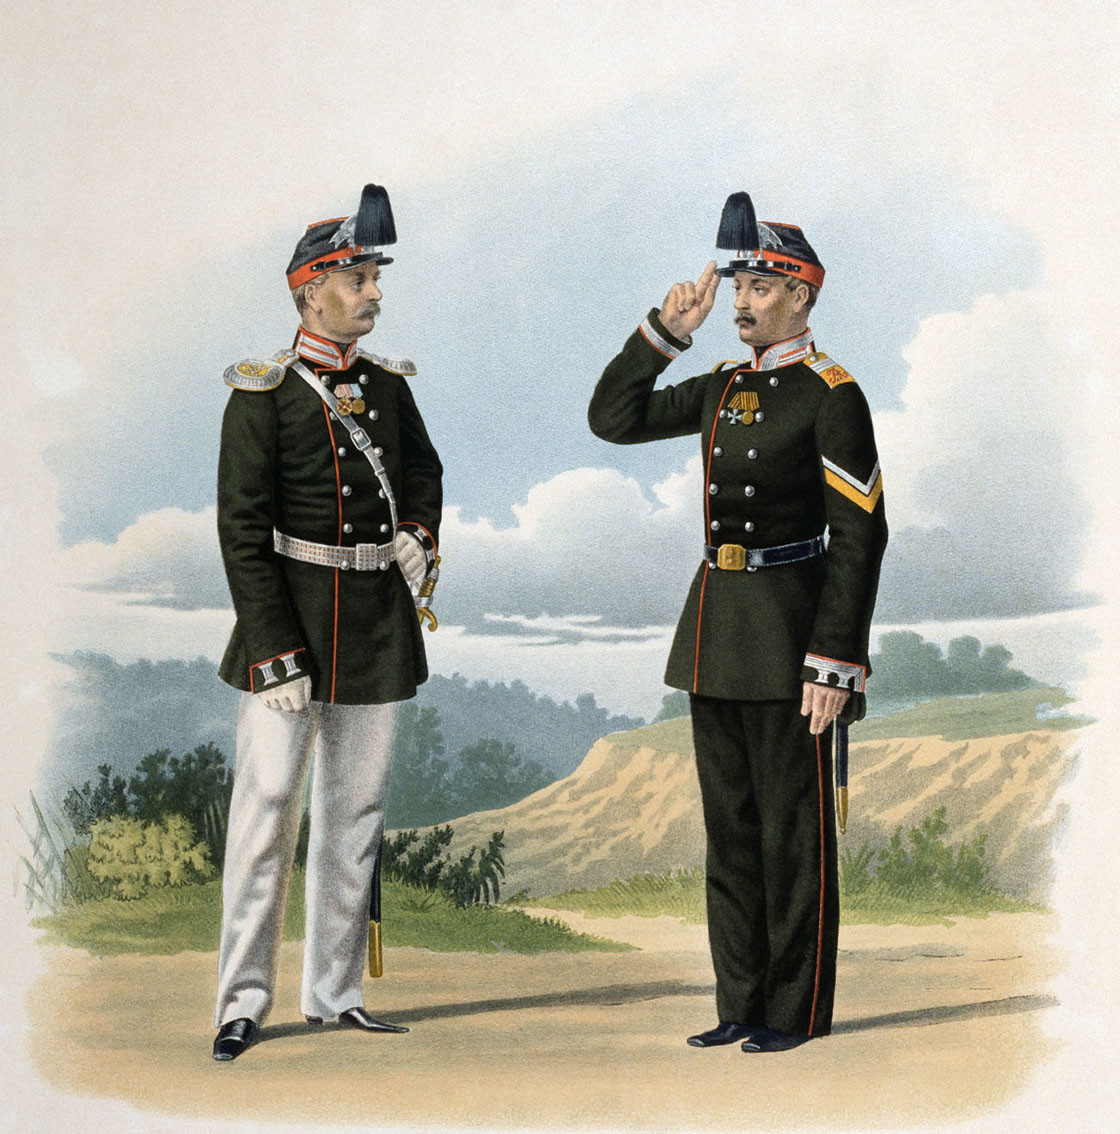 Officers of the 13th Yerevan Grenadier Regiment of the Russian Imperial Army